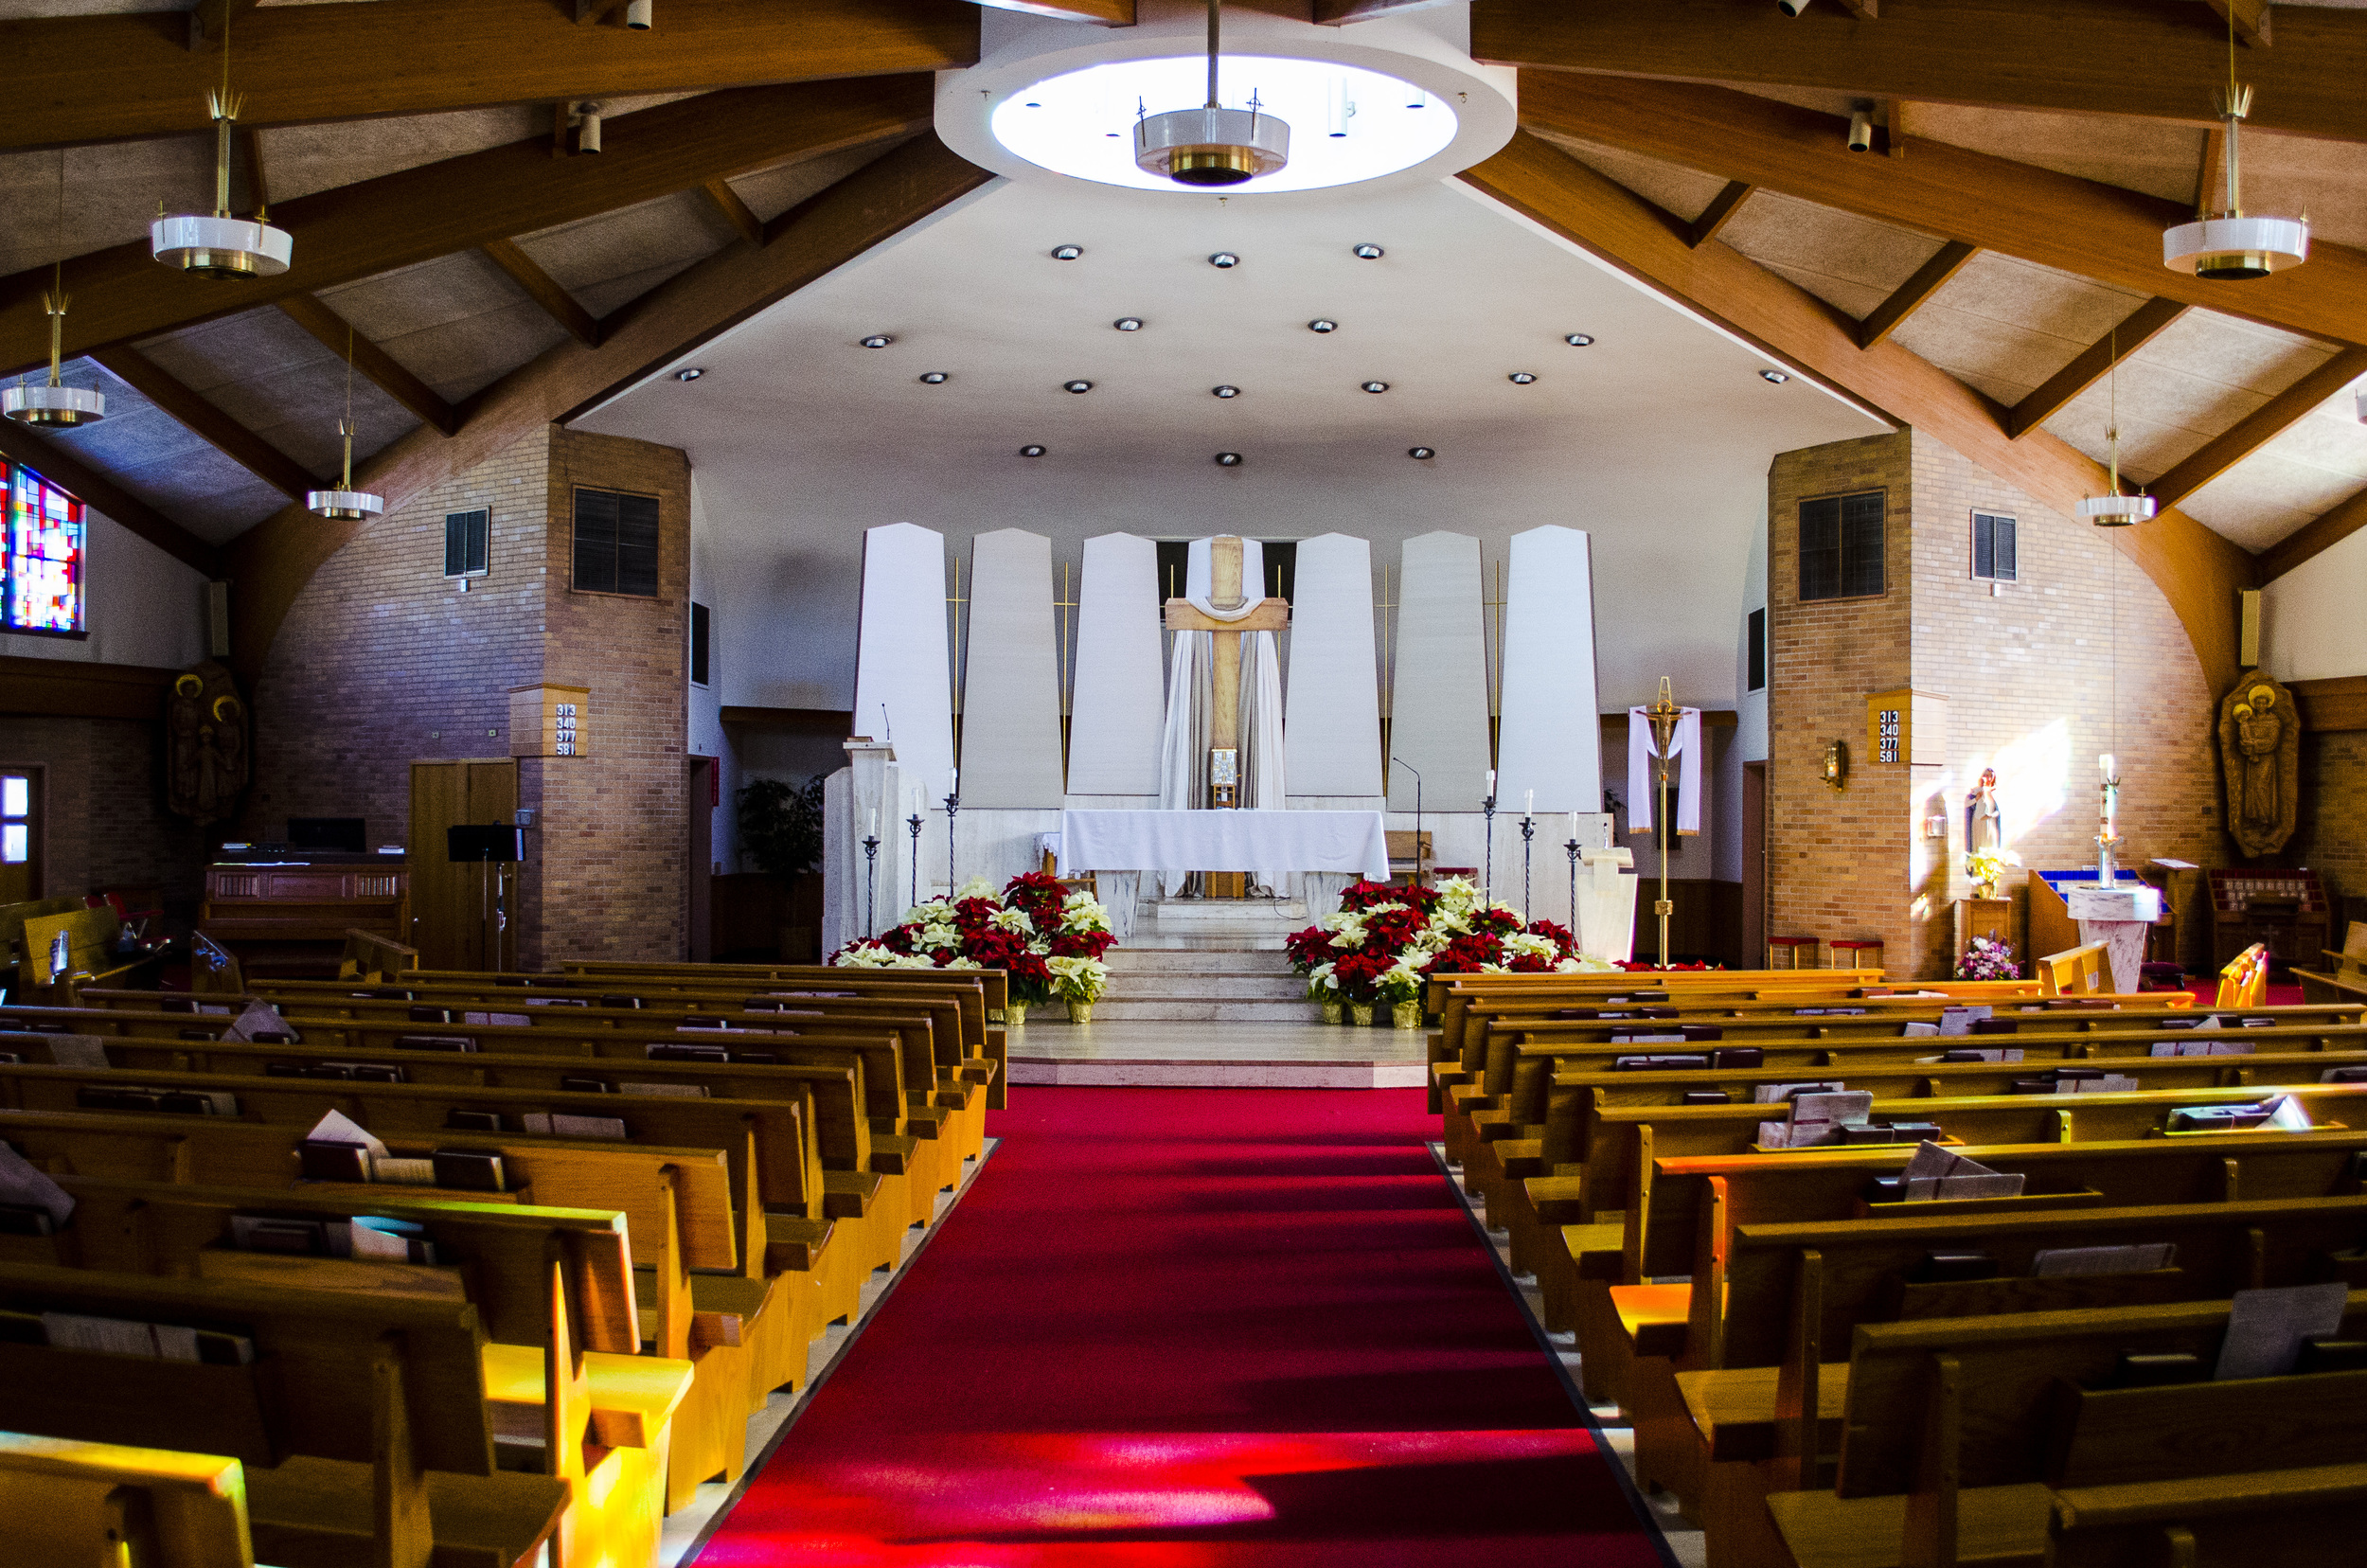 The warm, welcoming interior of St. Anthony's Church in Northvale, NJ.  The Tabernacle is located directly behind the altar.  You are most welcome to come in during the day and spend some time reflecting with the Lord.